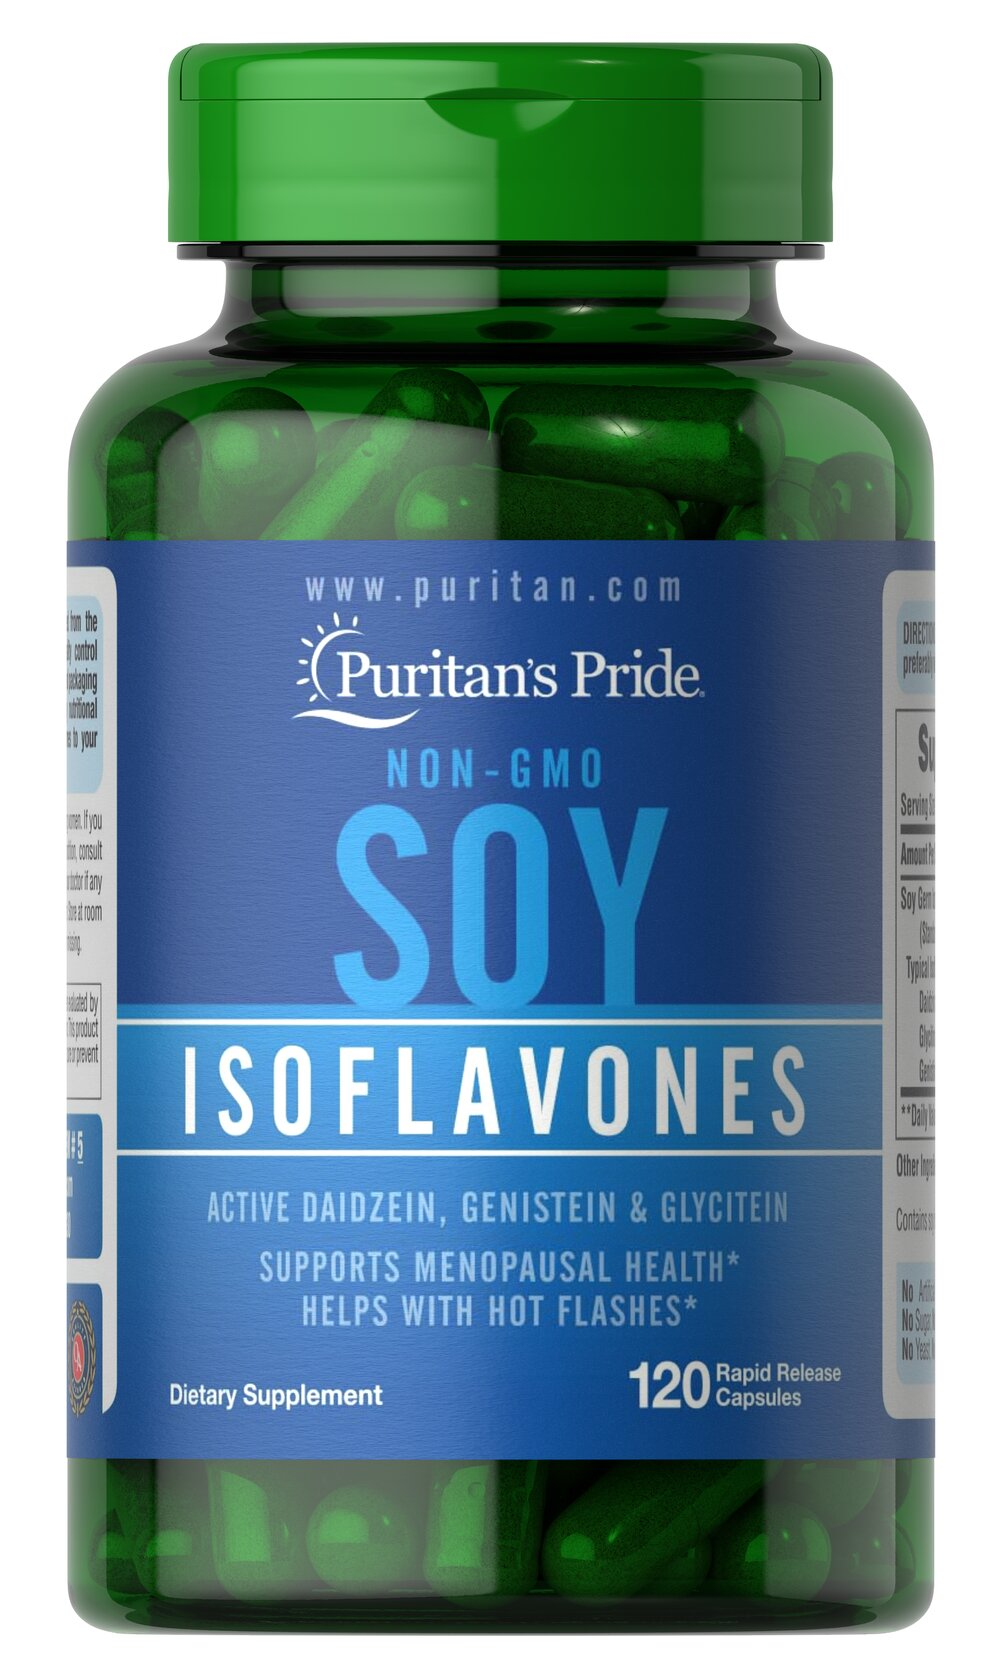 Non-GMO Soy Isoflavones 750 mg <p>Soy is a rich, plant-based source of phytoestrogens, which are naturally occurring compounds that help with hot flashes in menopausal women.**</p><p>Made from non-GMO certified soybeans, soy isoflavones provide holistic supplementation for a woman's midlife years. Our non-GMO soy isoflavones  include Daidzein, Genistein, and other soy isoflavones.</p> 120 Capsules 750 mg $17.99